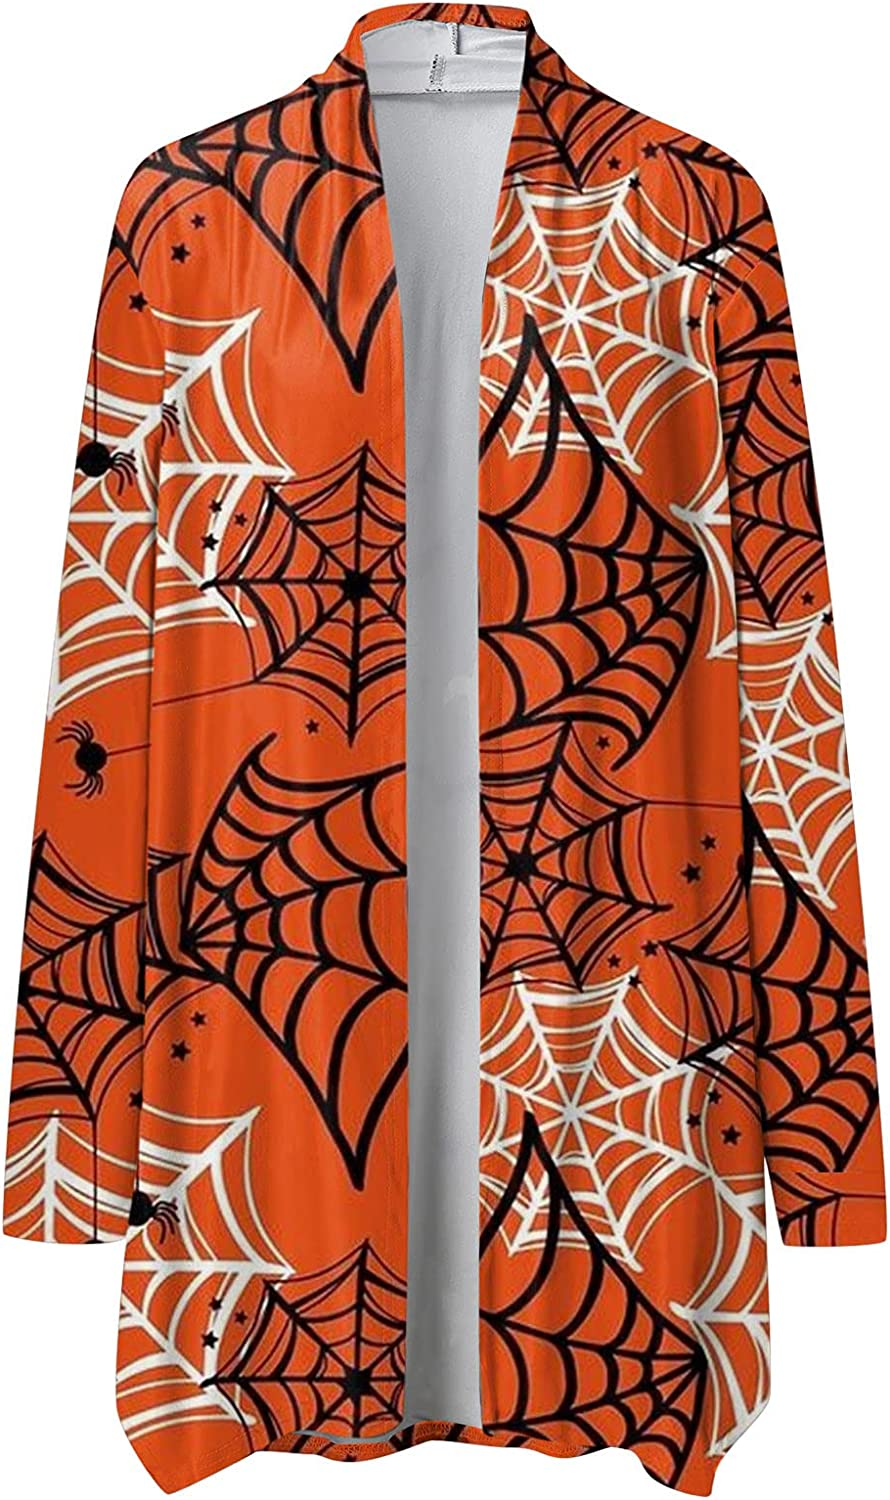 Cardigan Sweaters for Women,Womens Long Sleeved Halloween Costumes Ghost Graphic Open Front Tops Comfort Sweatshirts